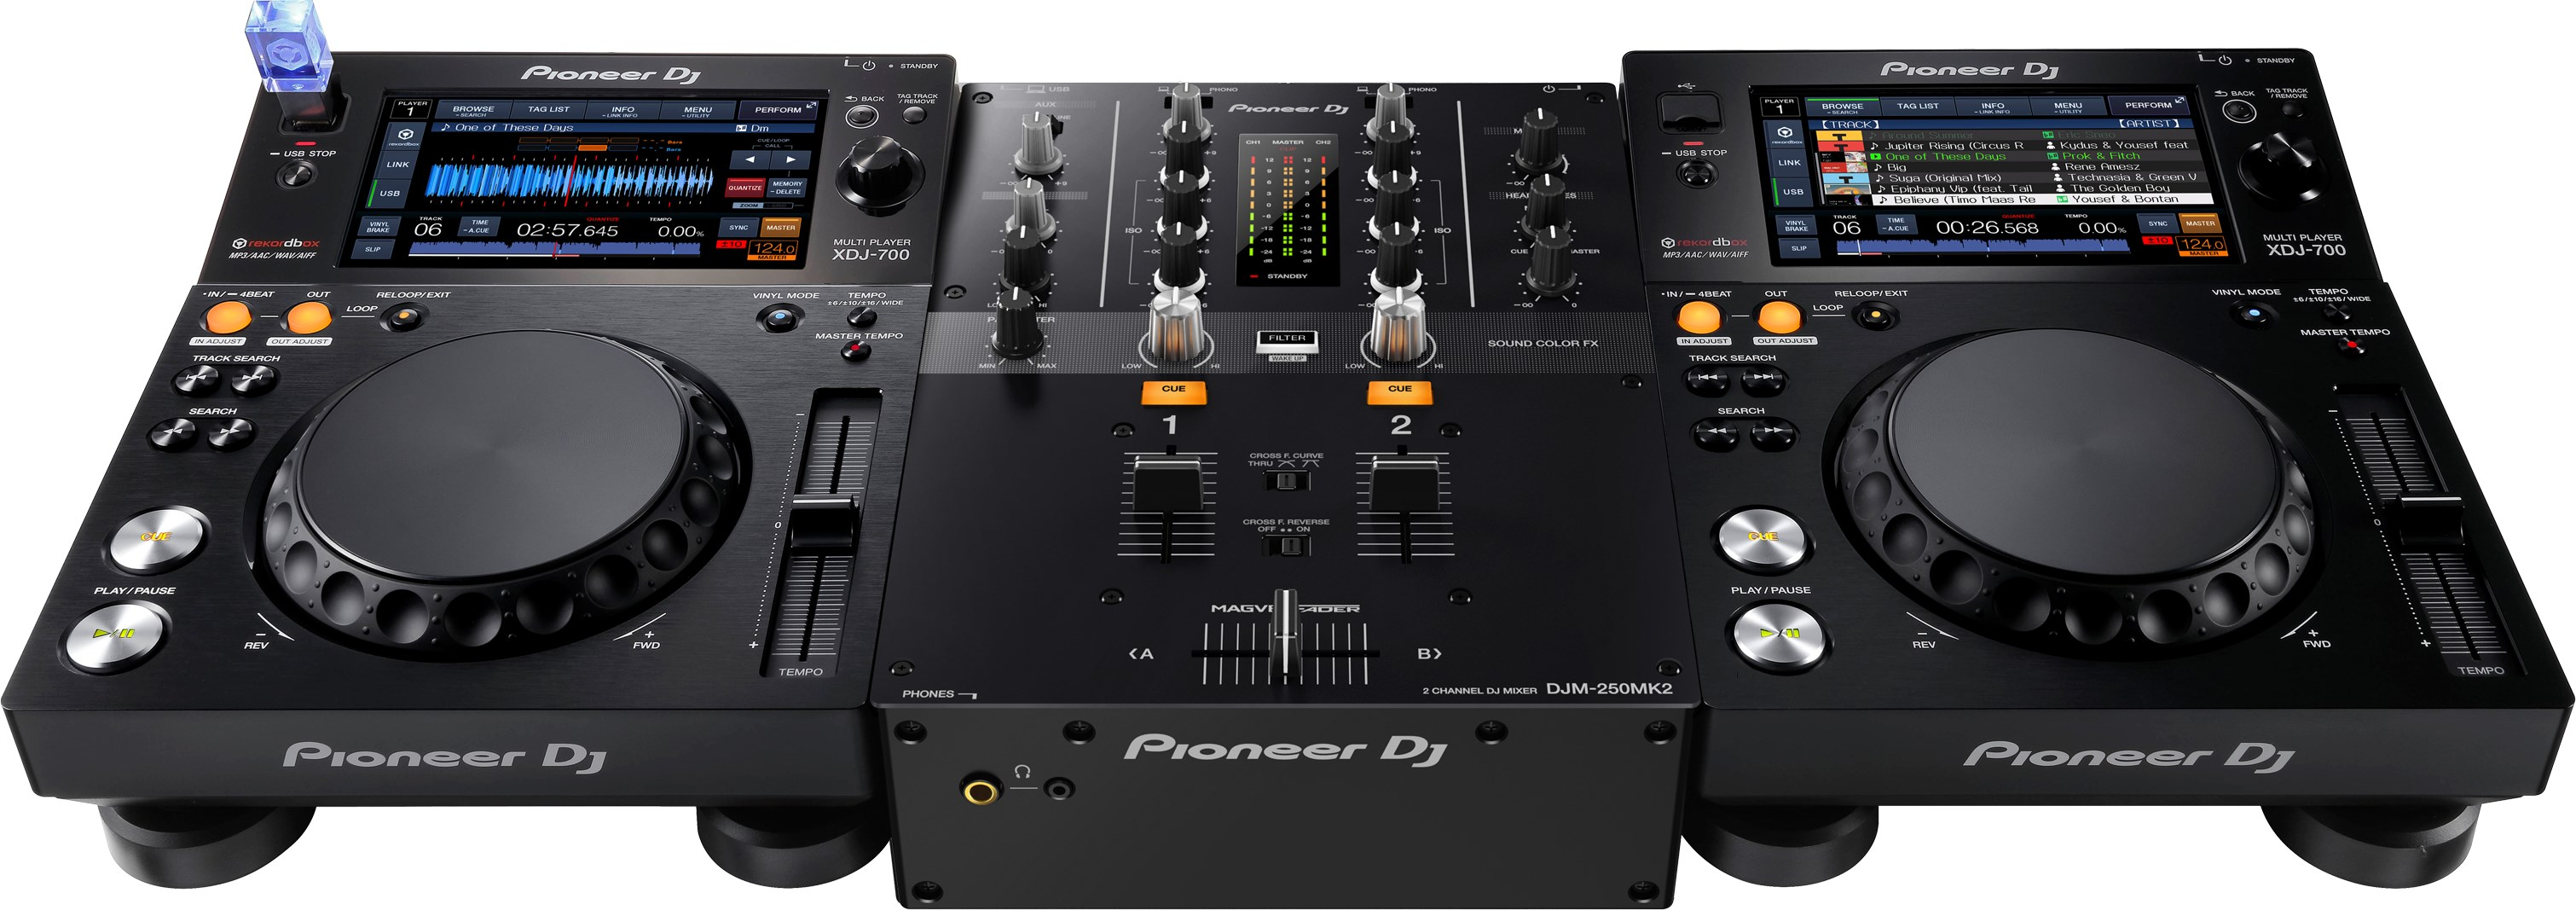 Djm 250mk2 totalljud - Table de mixage pioneer djm 5000 ...